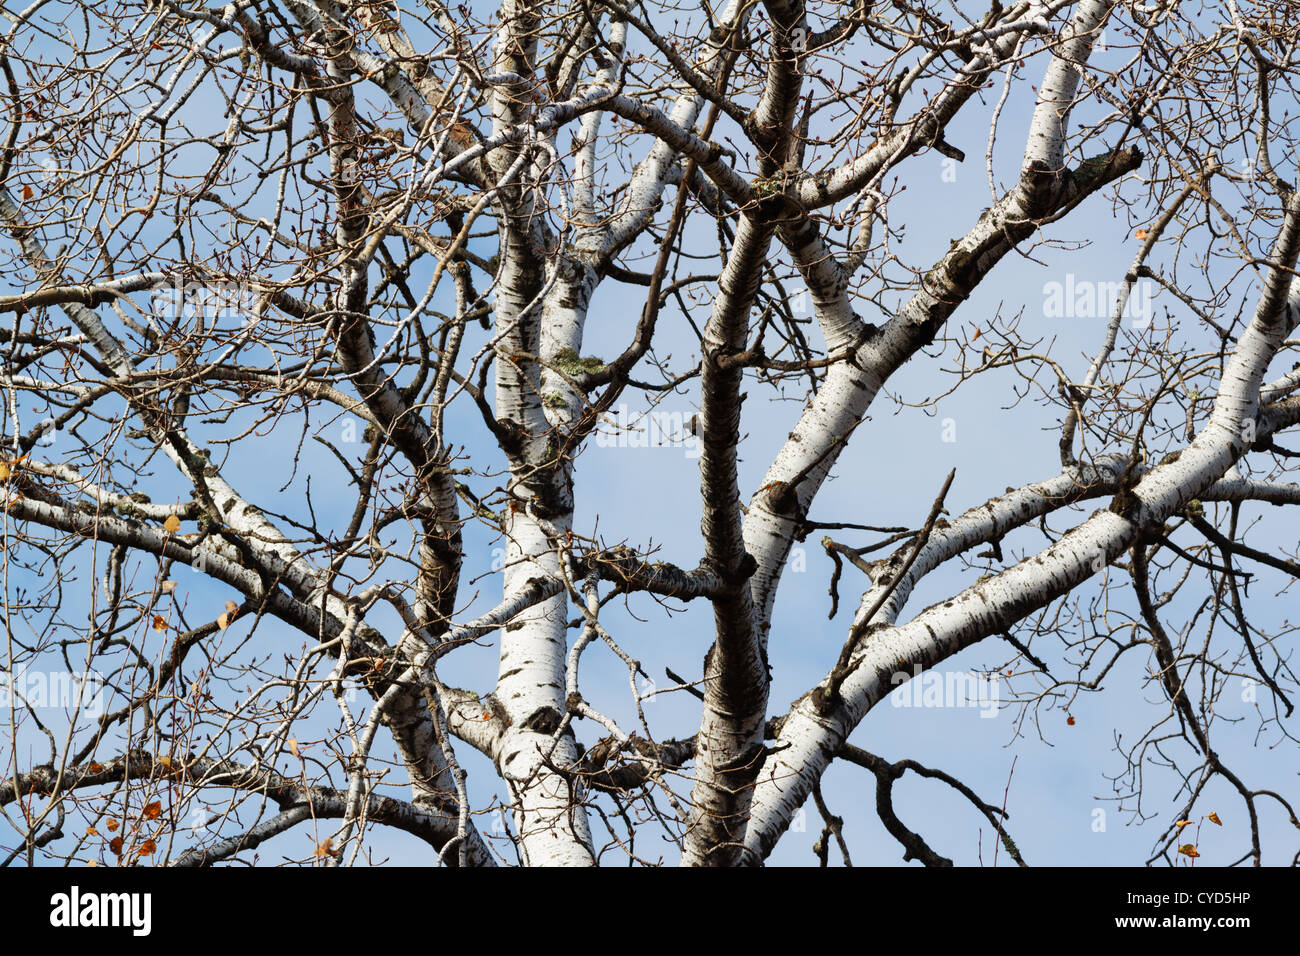 Barren poplar tree branches, Northern Minnesota, USA. - Stock Image